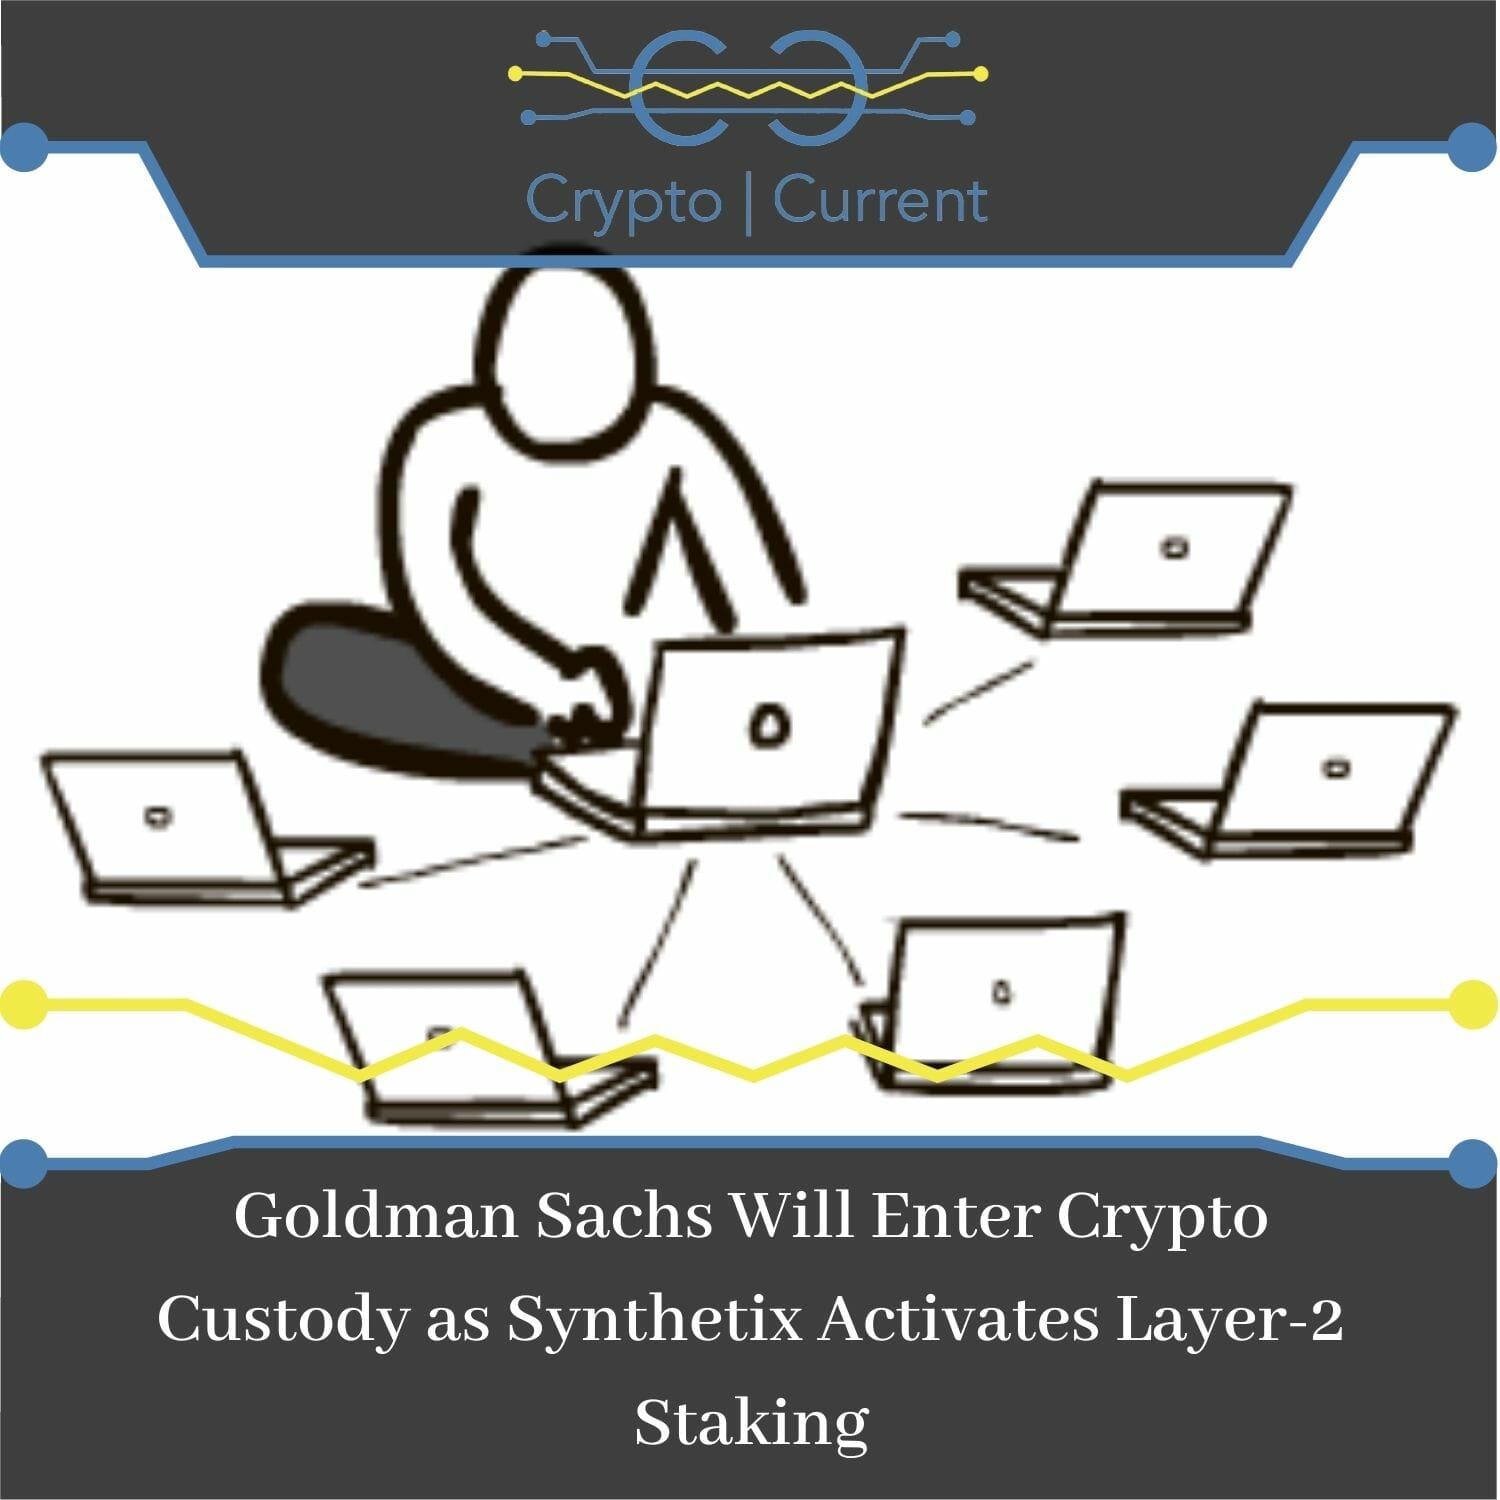 Goldman Sachs Will Enter Crypto Custody as Synthetix Activates Layer-2 Staking